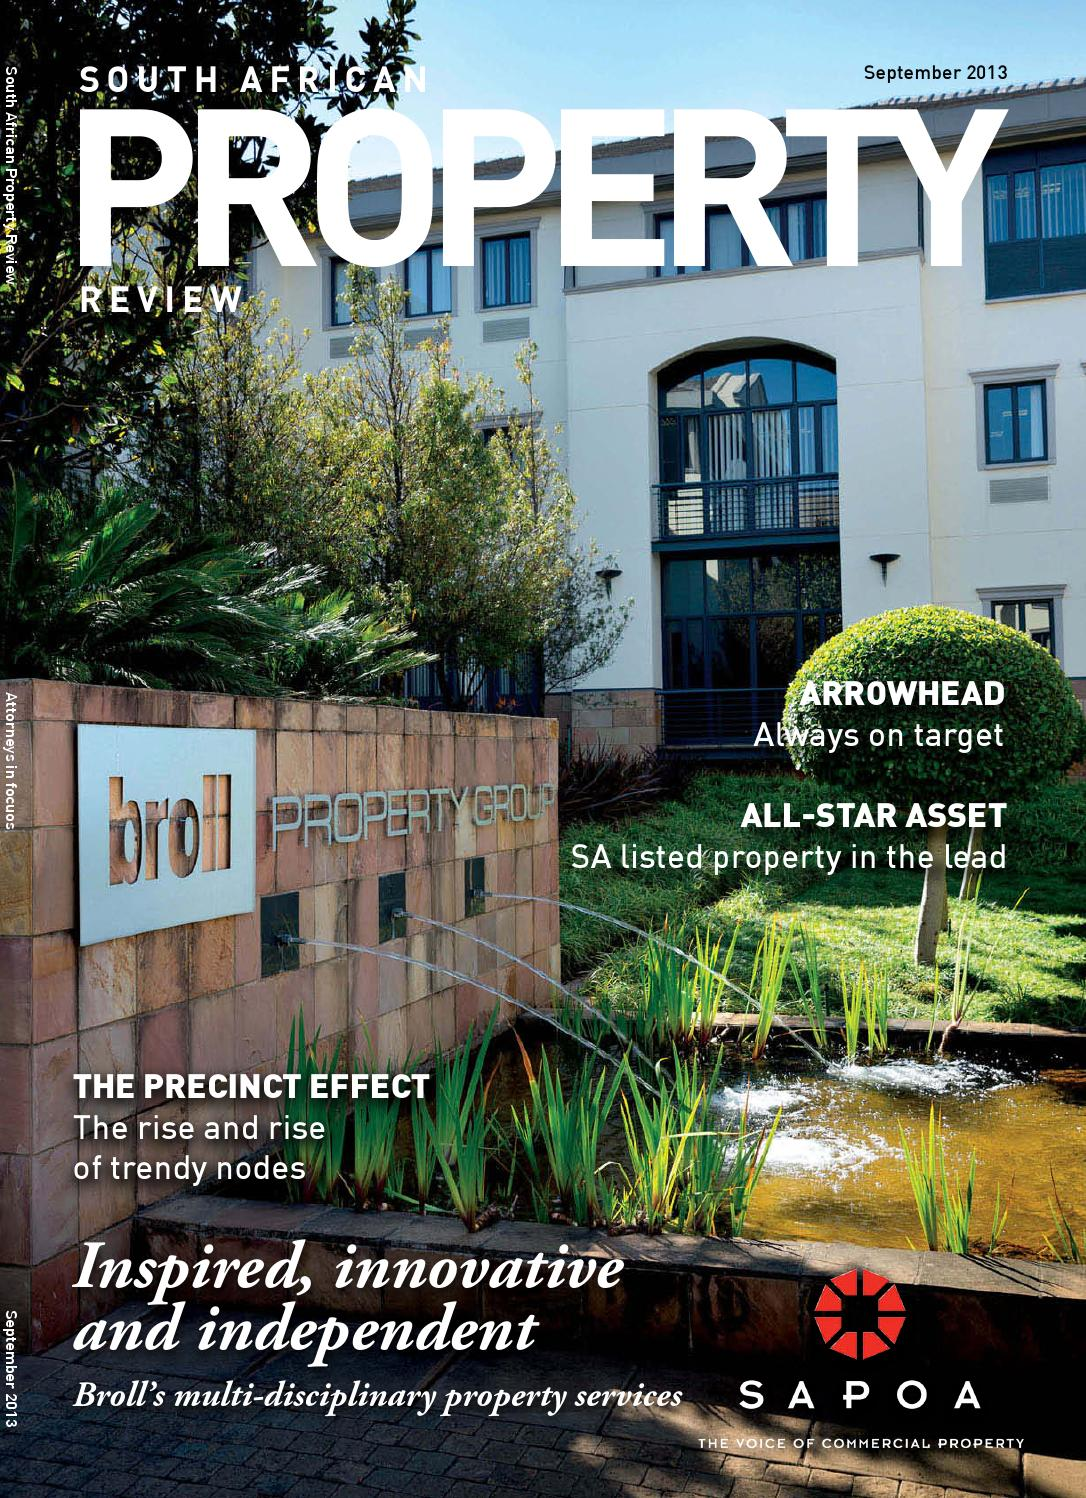 South African property law